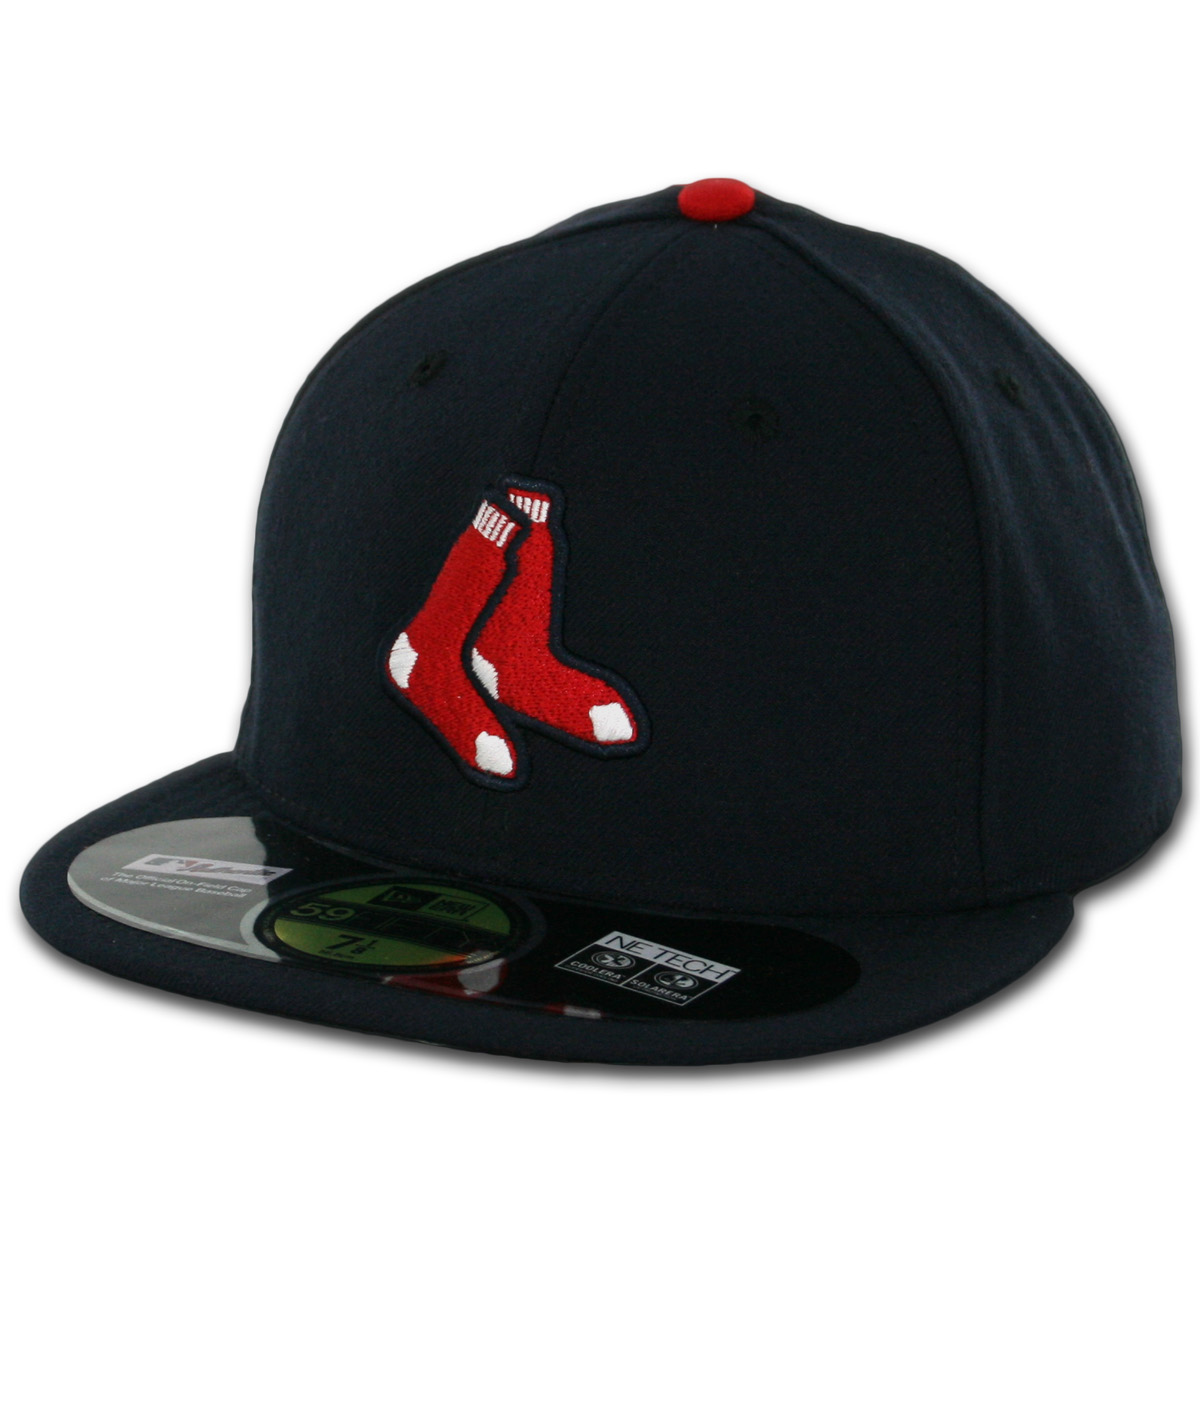 7b1ec179 New Era 59Fifty Boston Red Sox 2016 Alternate Authentic On Field Fitted Hat